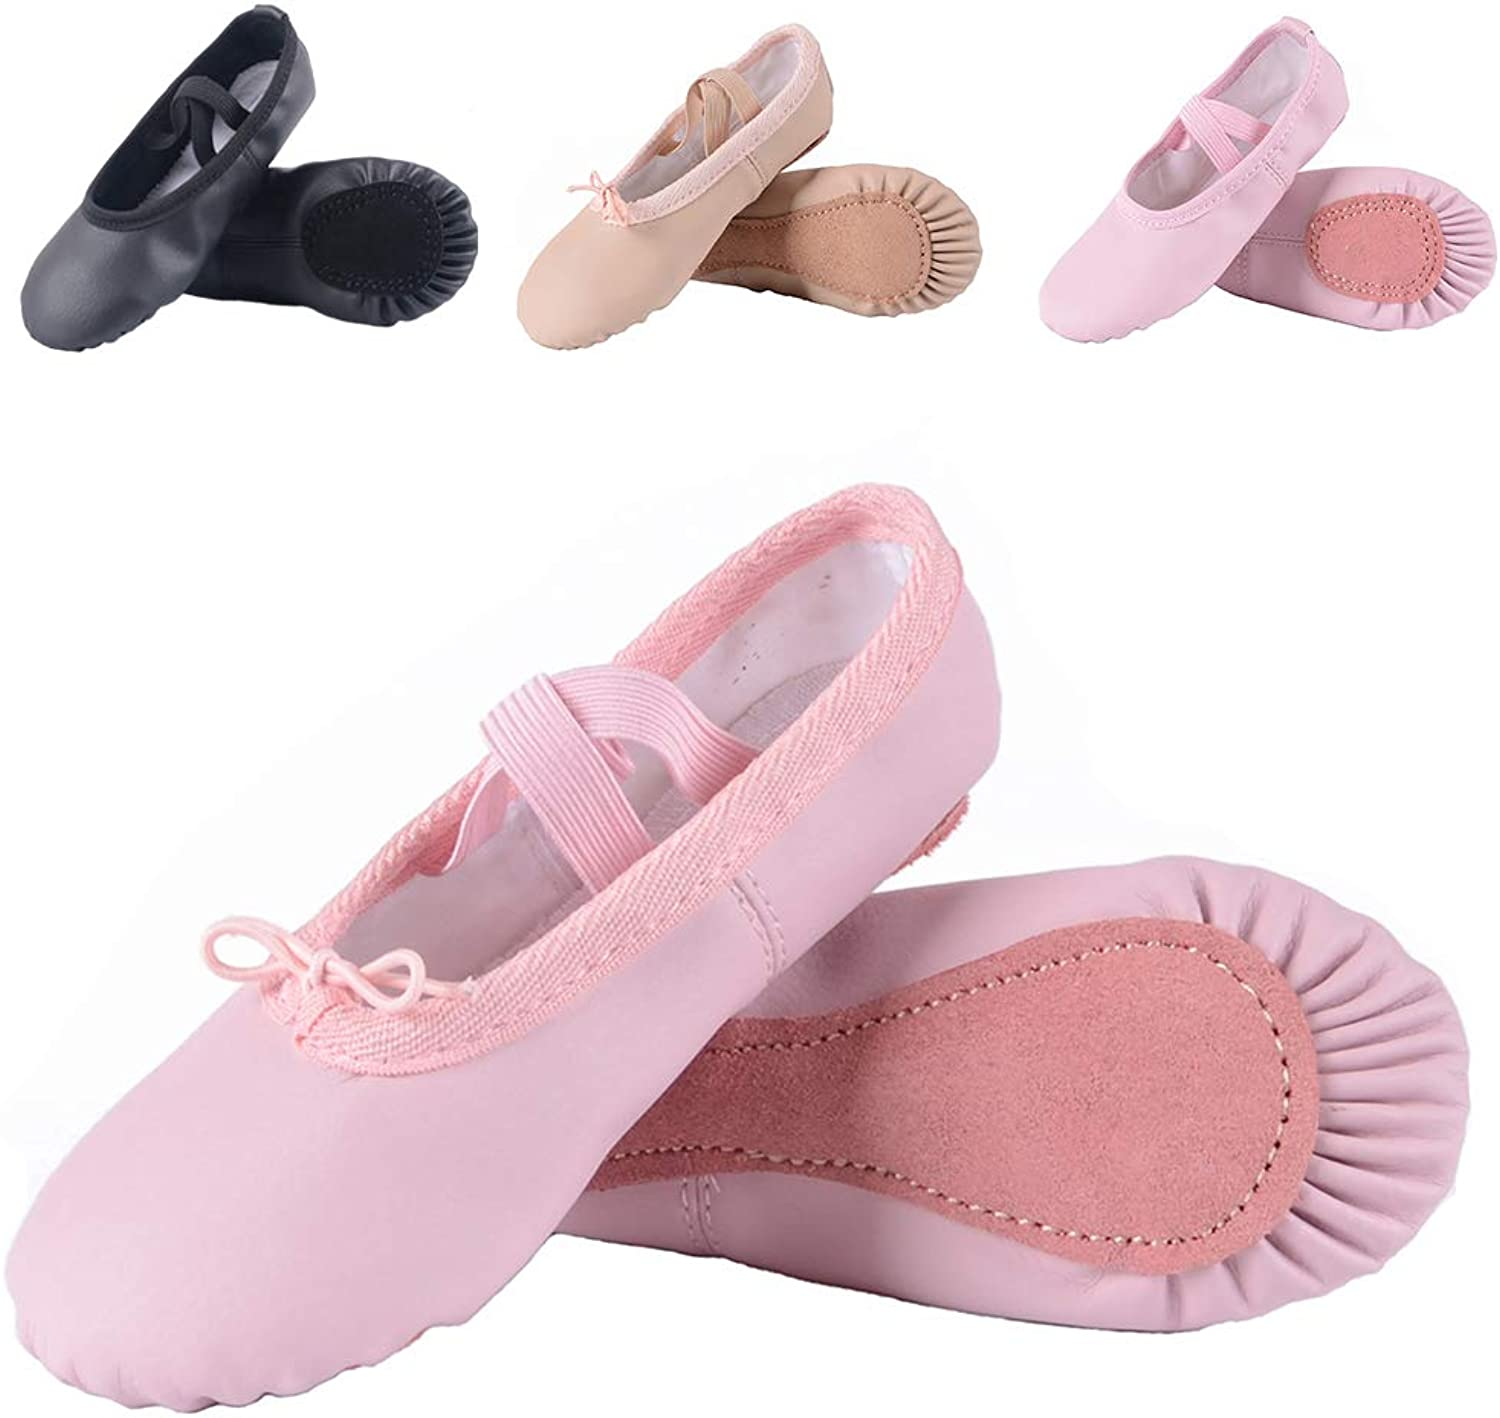 Ruqiji Ballet shoes for Girls Toddlers Kids,Black Canvas Ballet shoes Leather Ballet Slippers Dance shoes